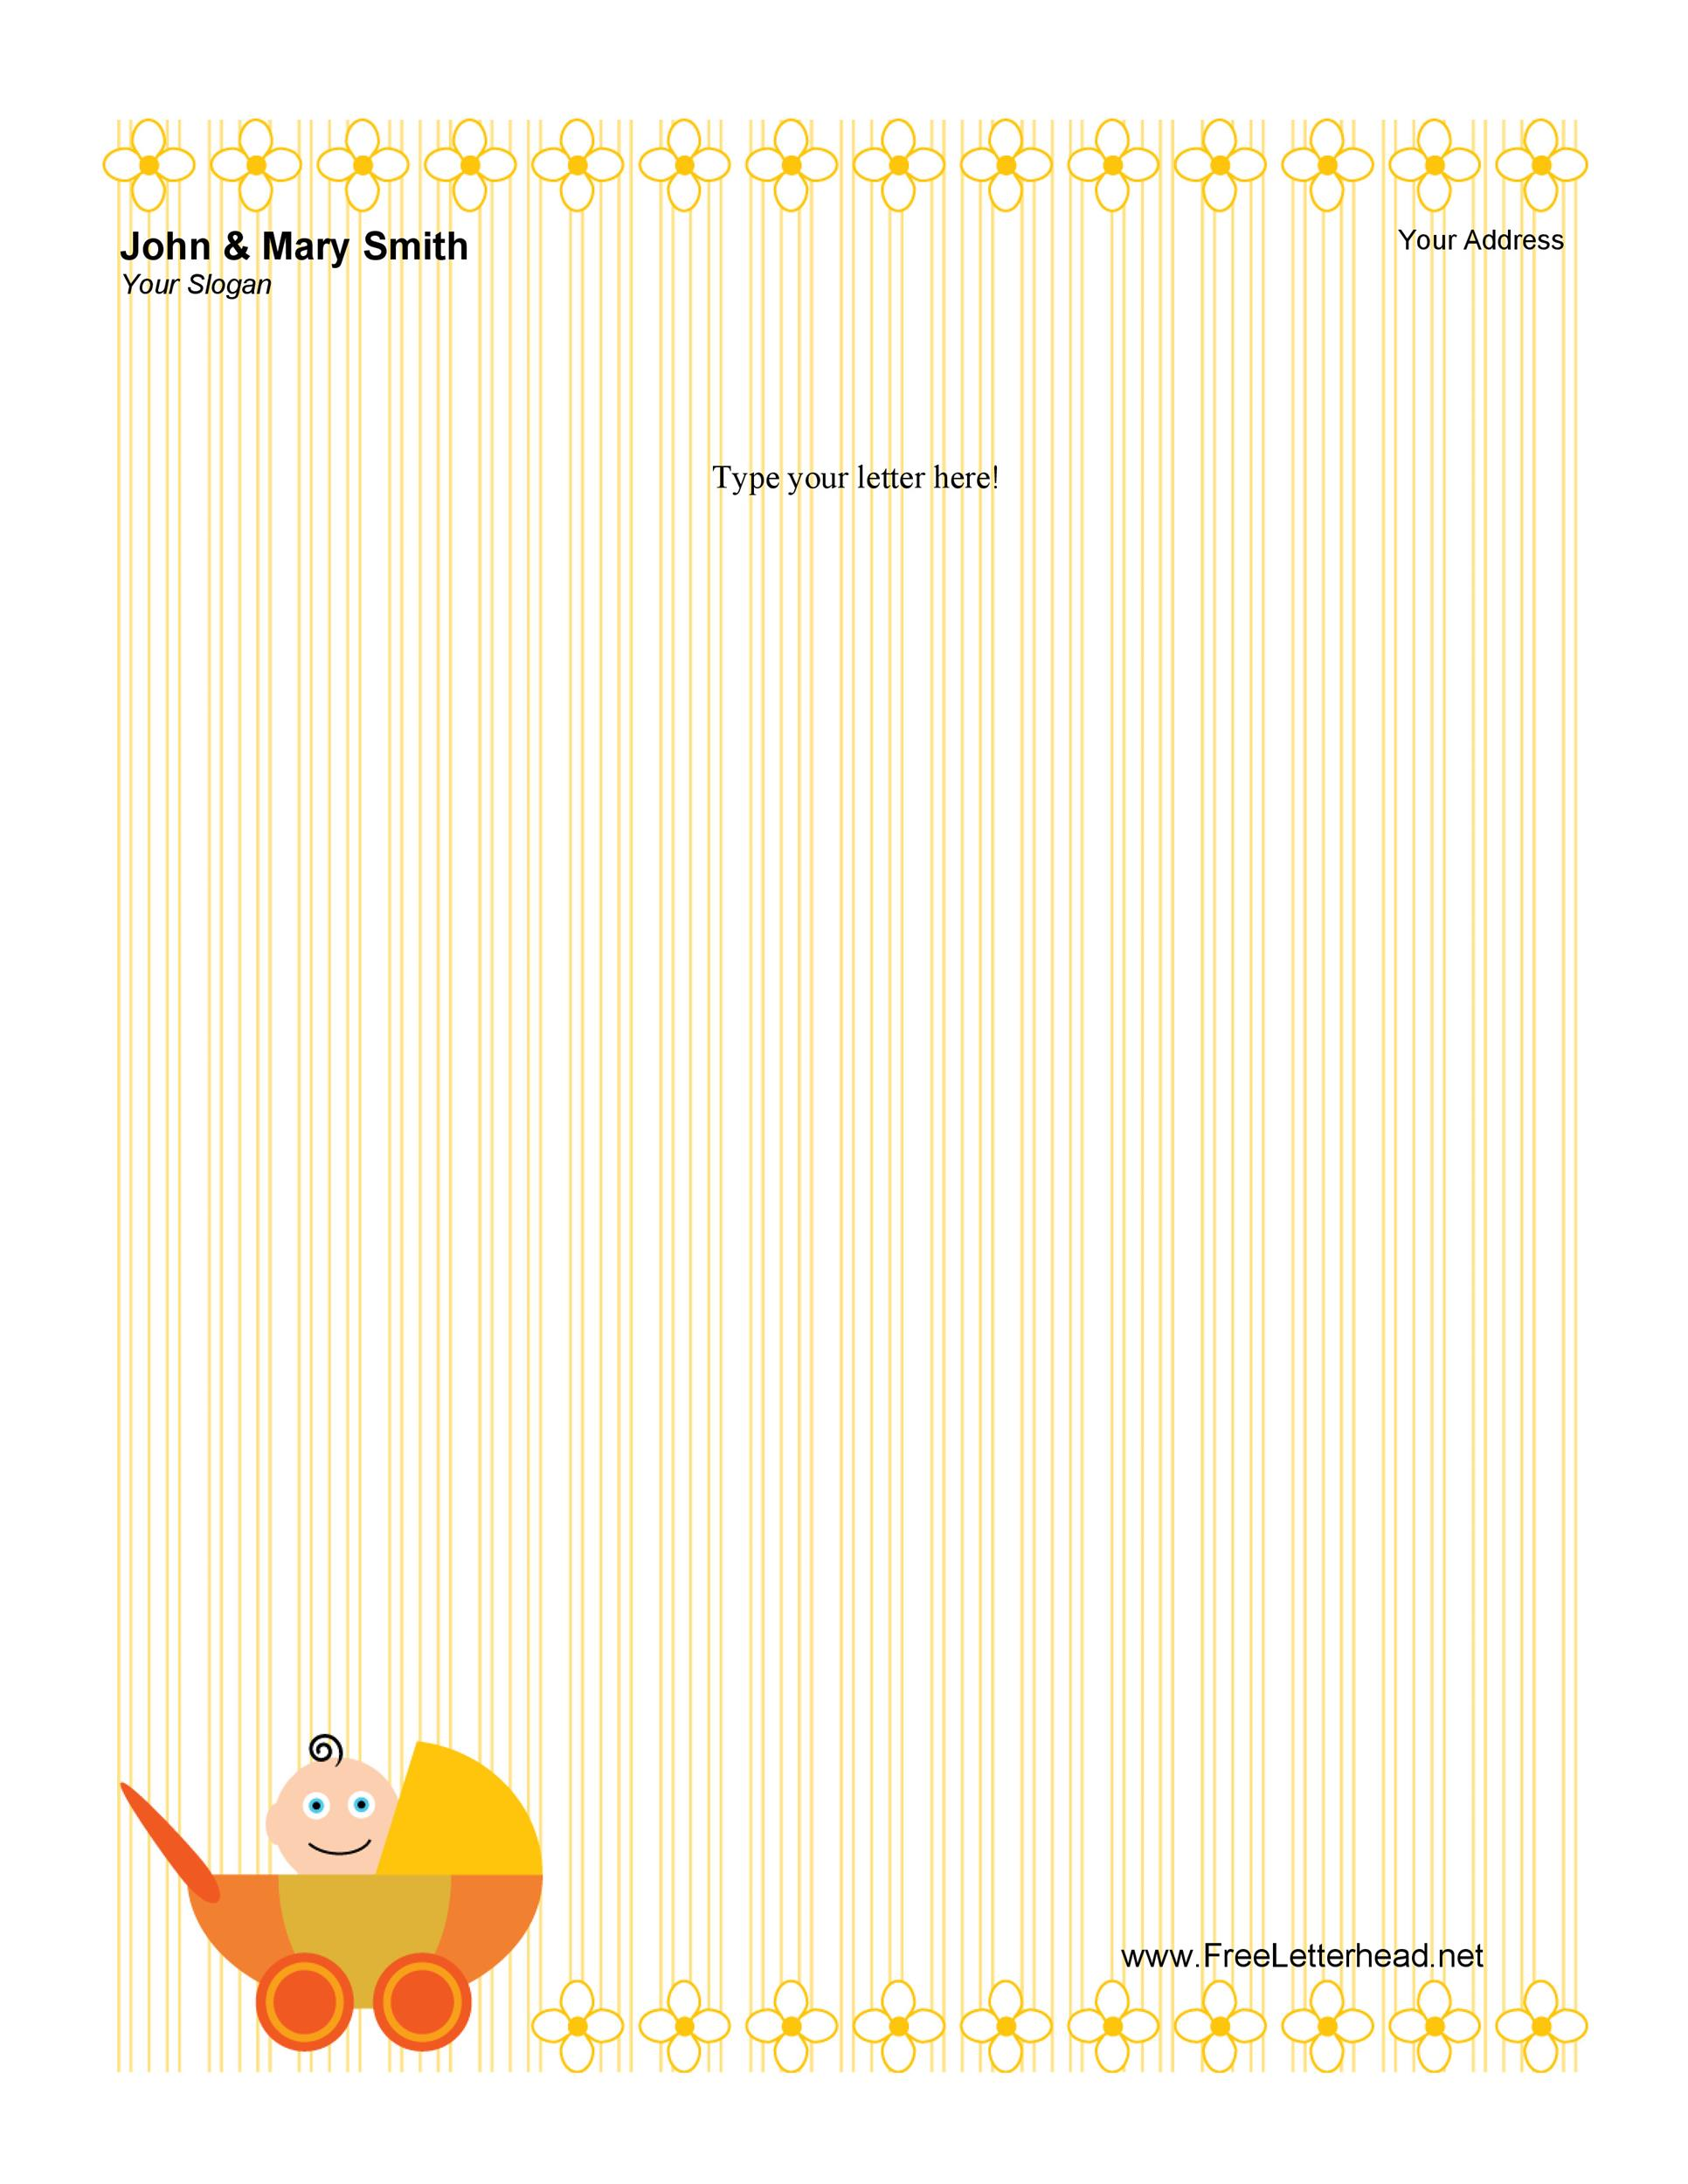 45 Free Letterhead Templates Examples Company Business Personal – Professional Letterhead Format